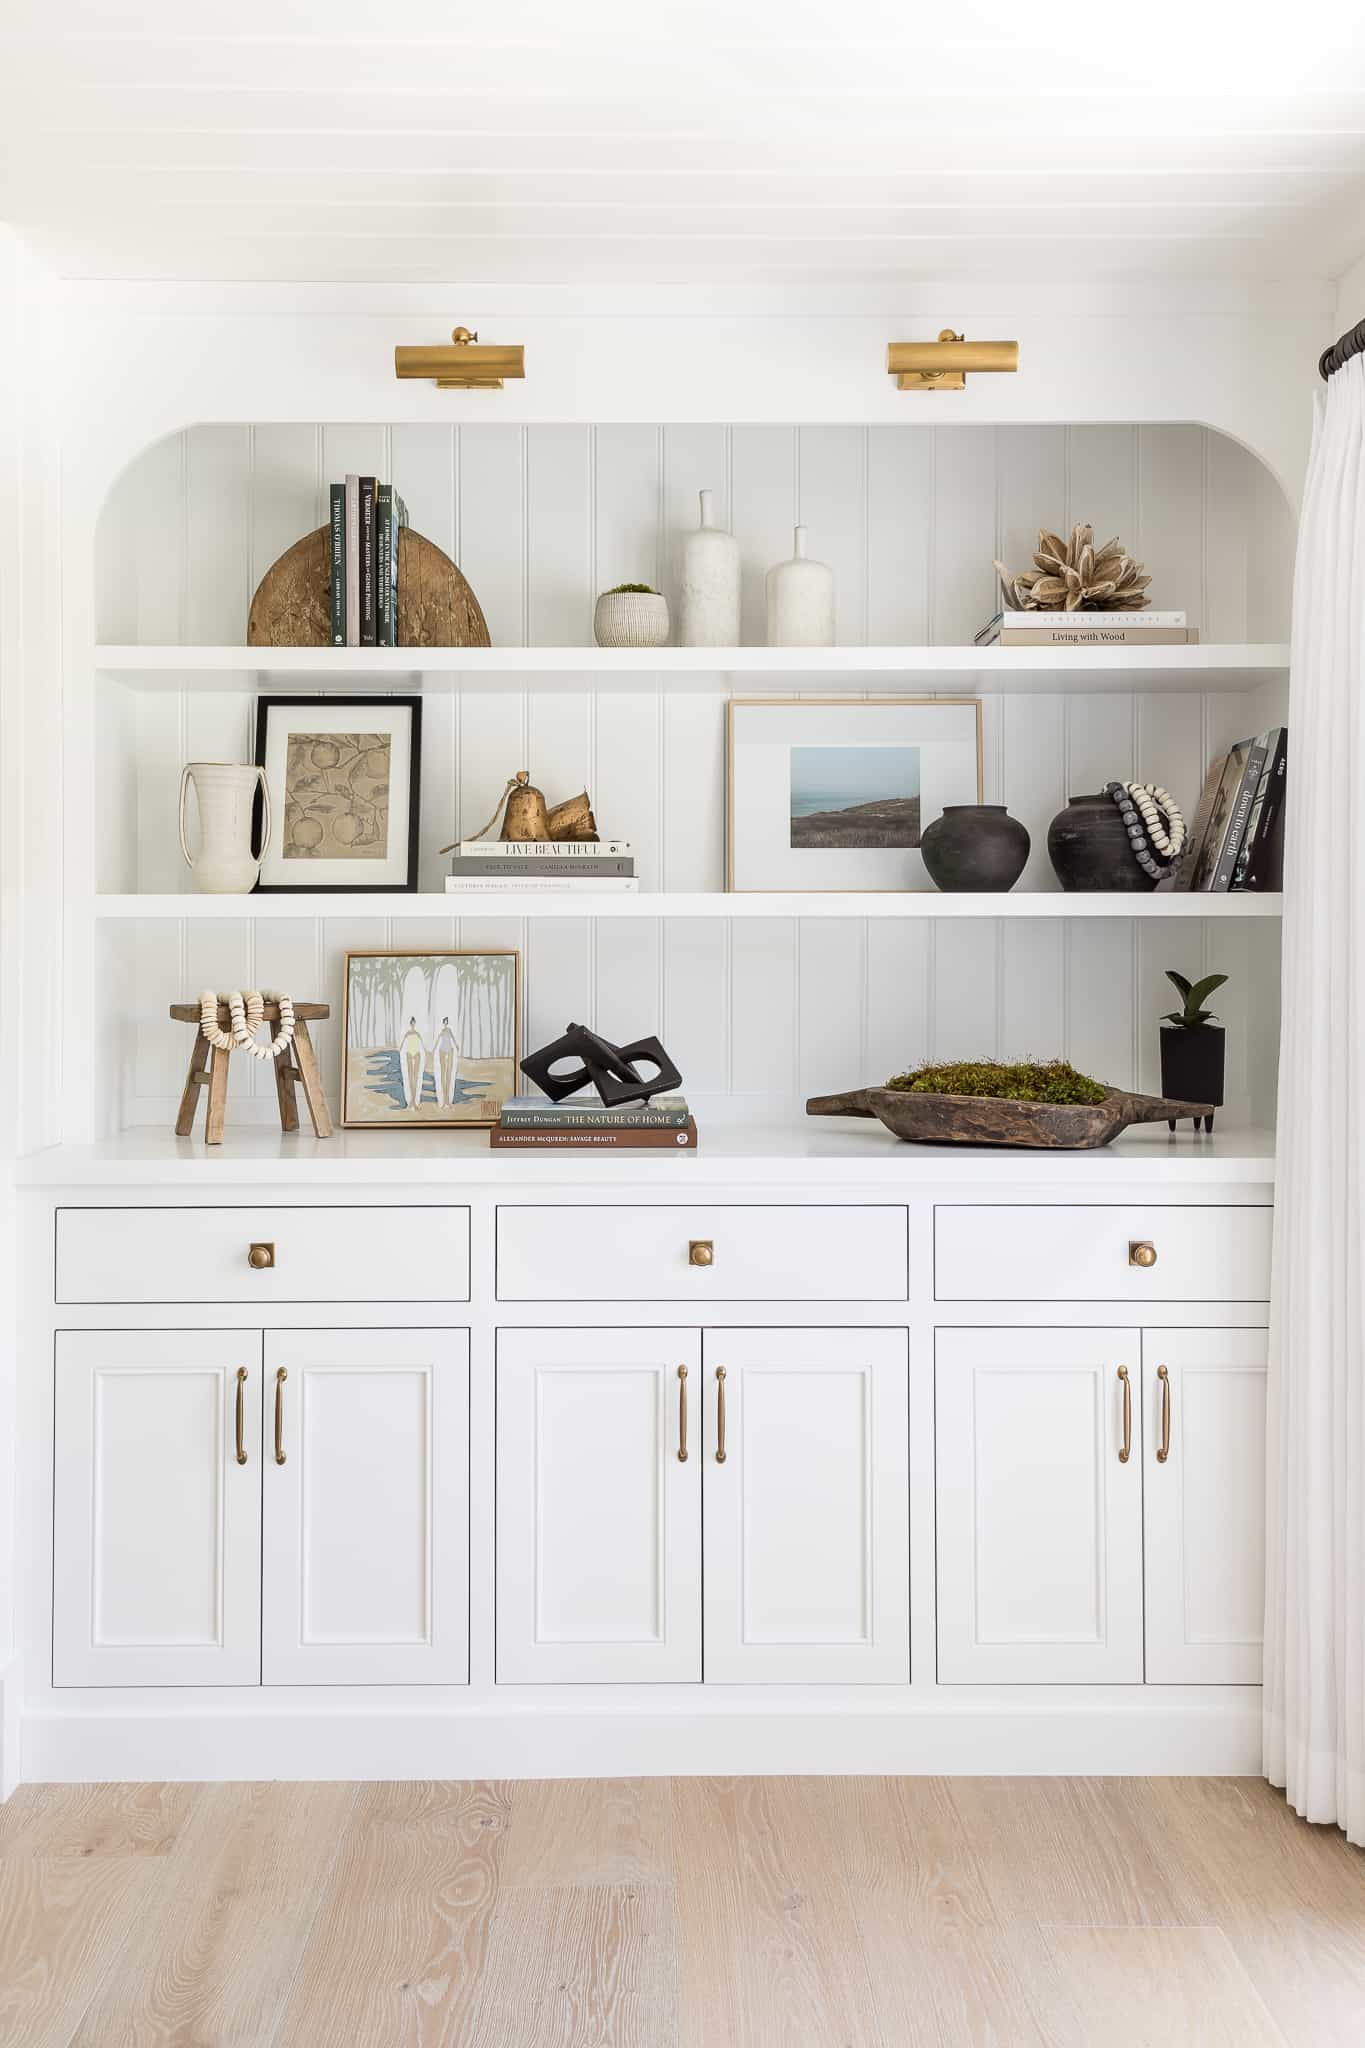 Port Newport Project - Mindy Gayer Design Co. - Built-In Shelving